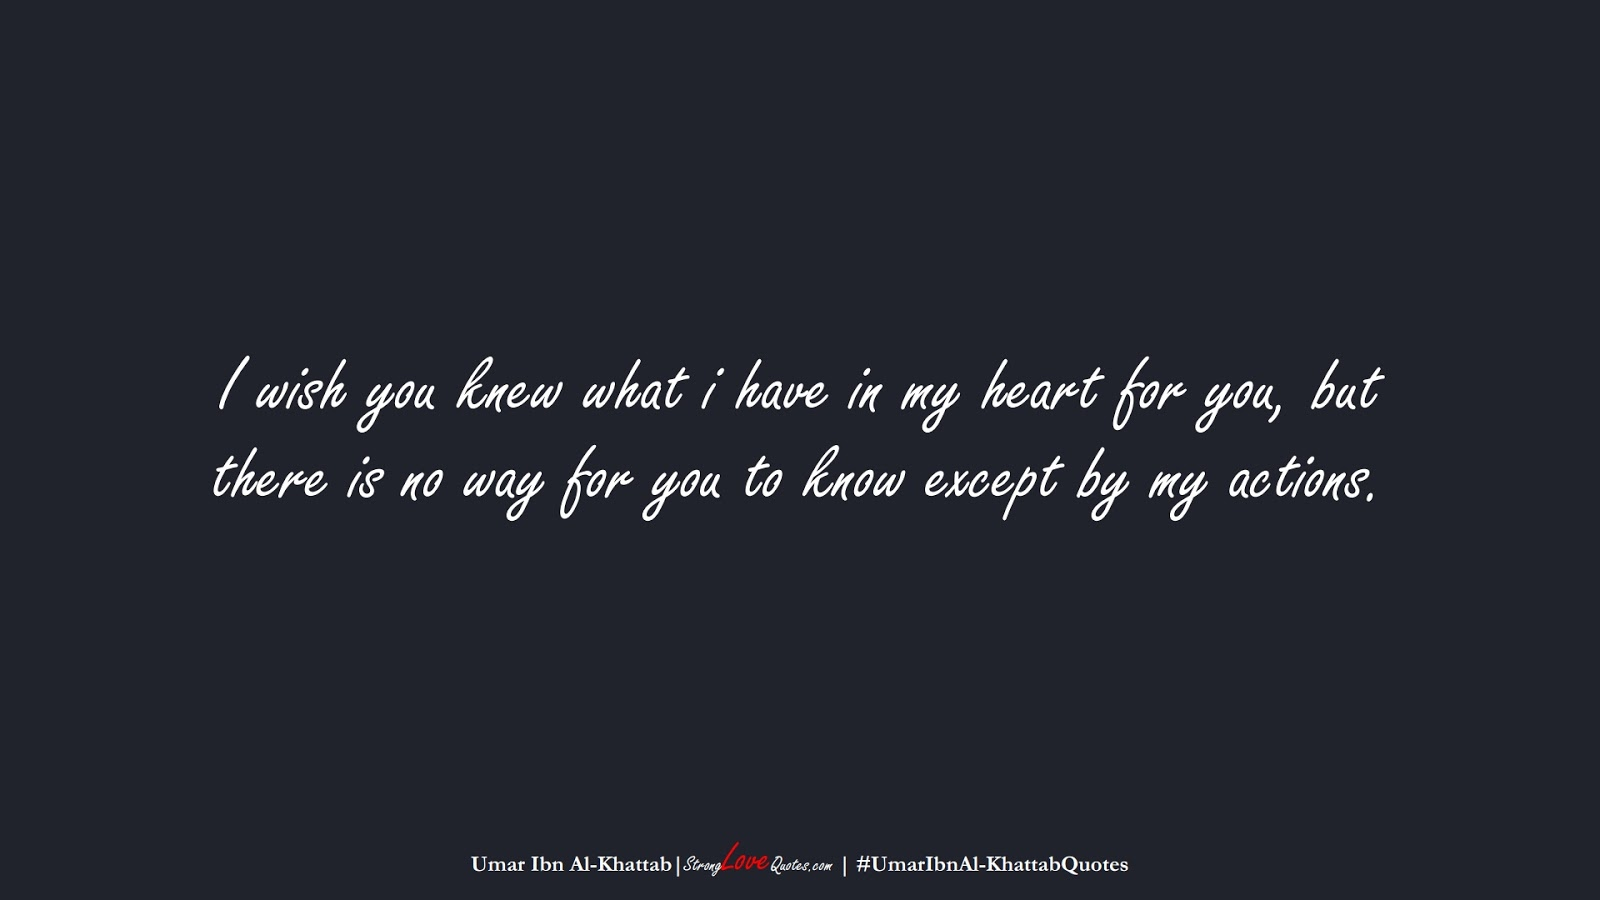 I wish you knew what i have in my heart for you, but there is no way for you to know except by my actions. (Umar Ibn Al-Khattab);  #UmarIbnAl-KhattabQuotes